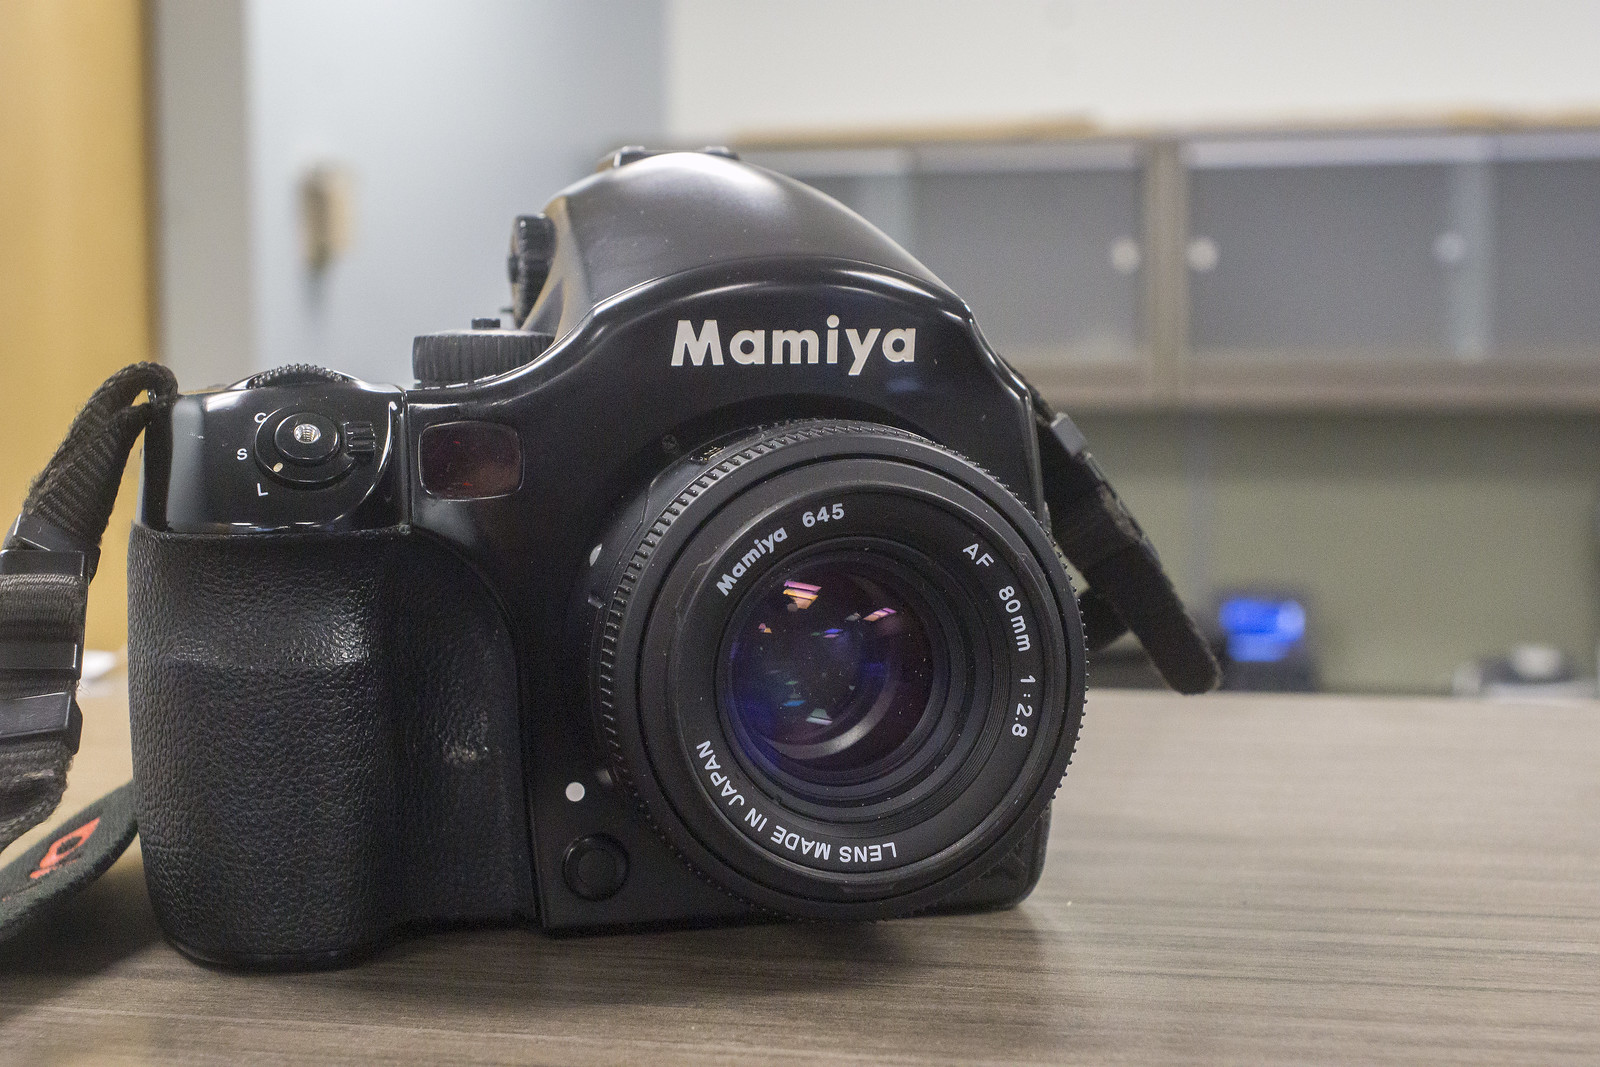 Camera Review Blog No. 82 - Mamiya 645 AF-D